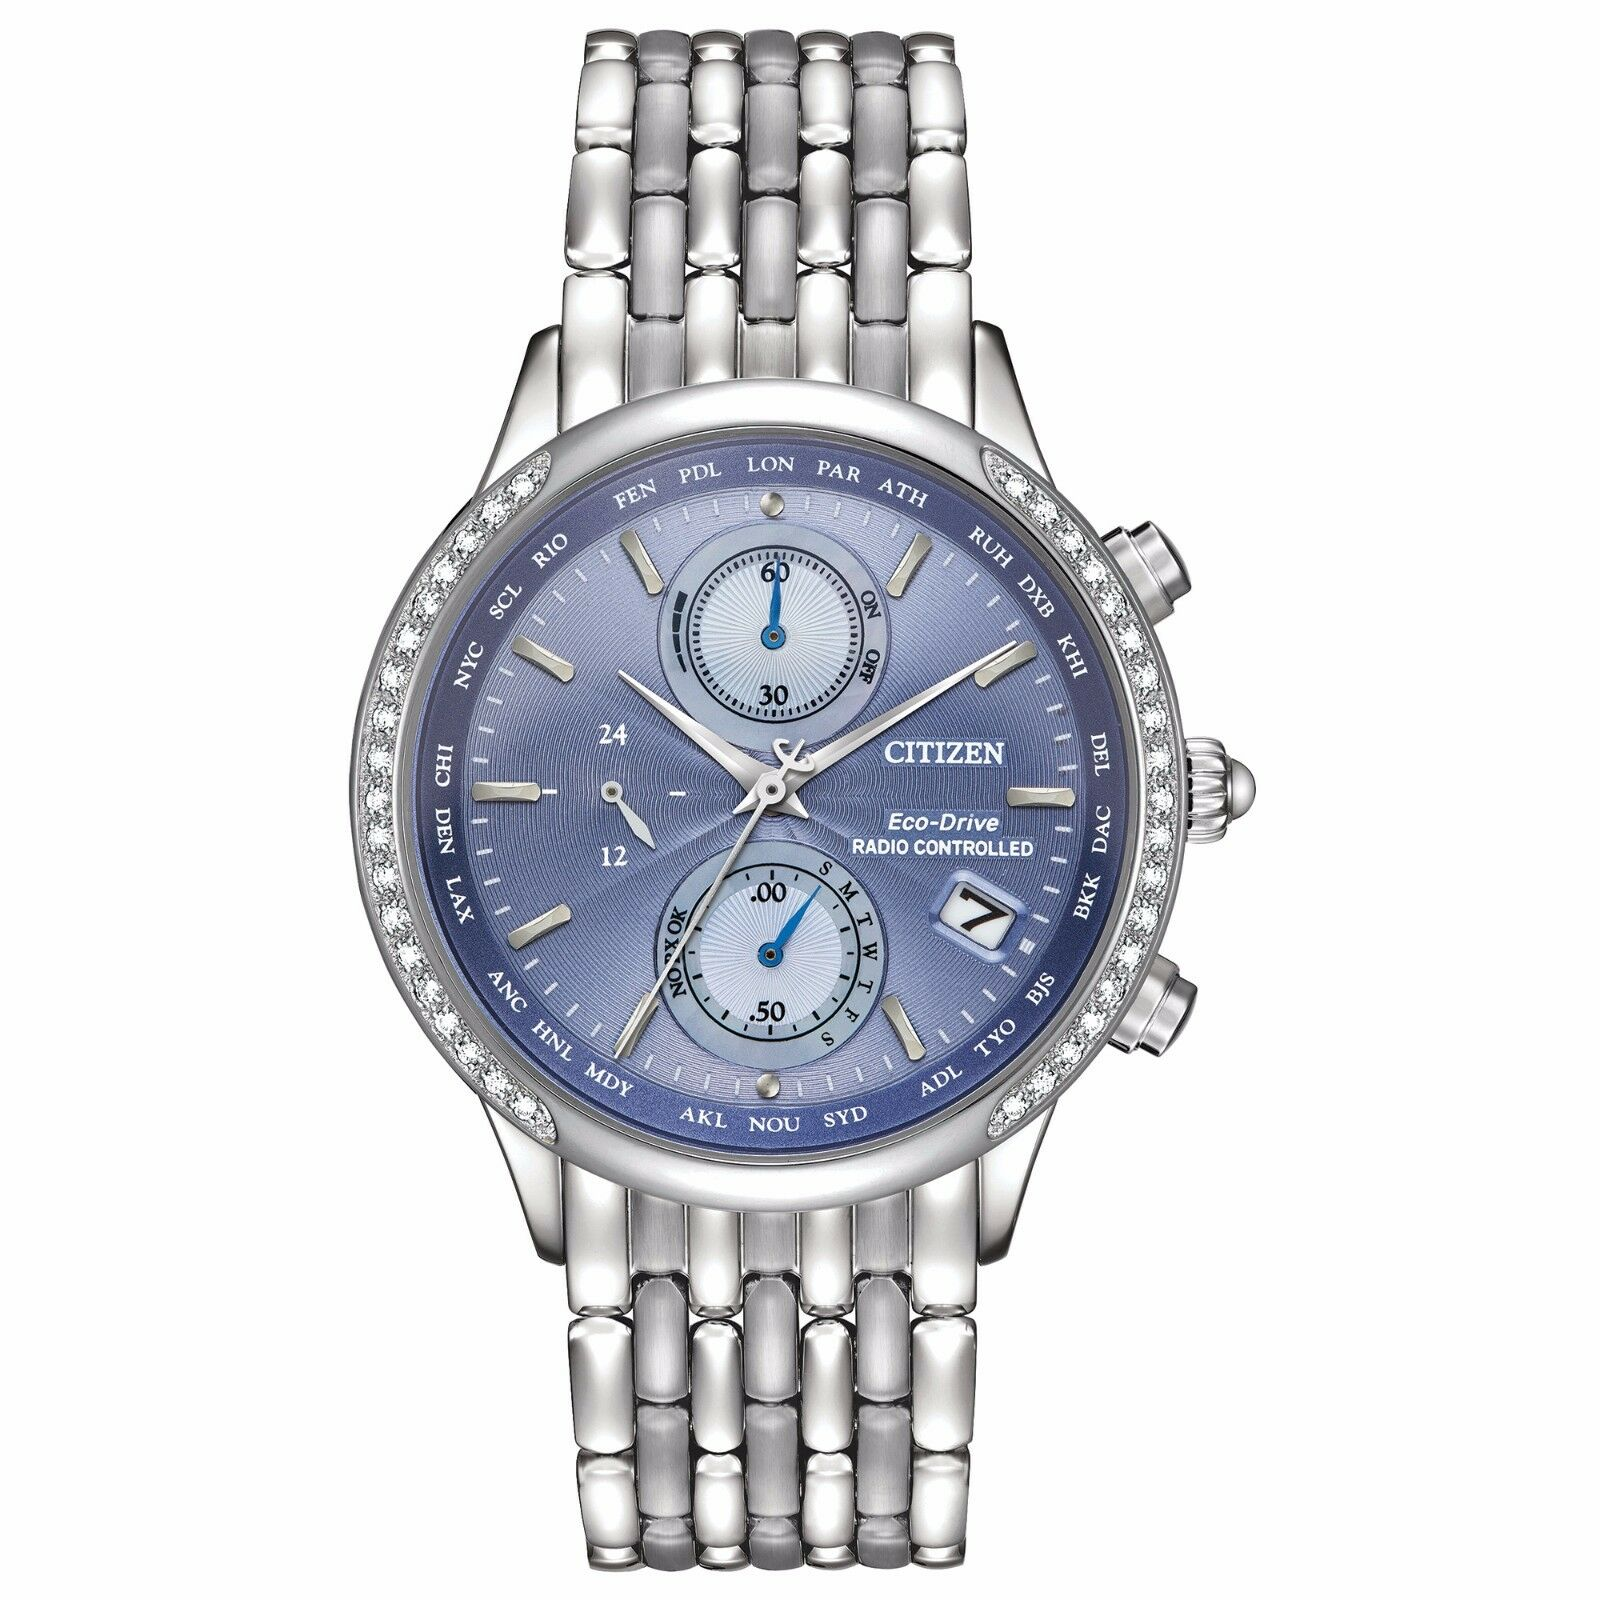 $179.99 - Citizen Eco-Drive A-T Women's FC5000-51L Chronograph Blue Dial 38mm Watch